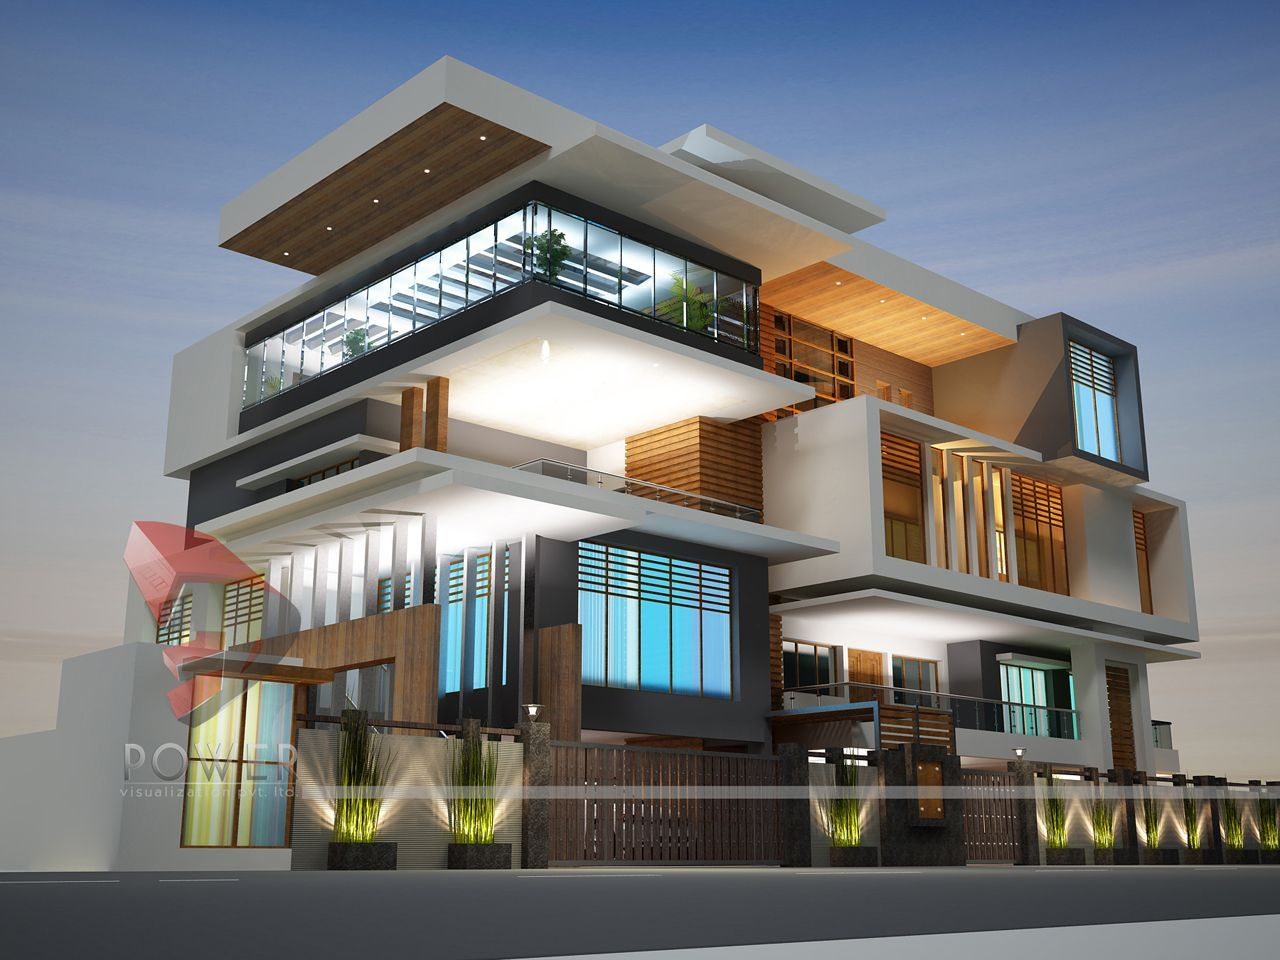 Modern house design in india architecture india modern for Modern home design in india